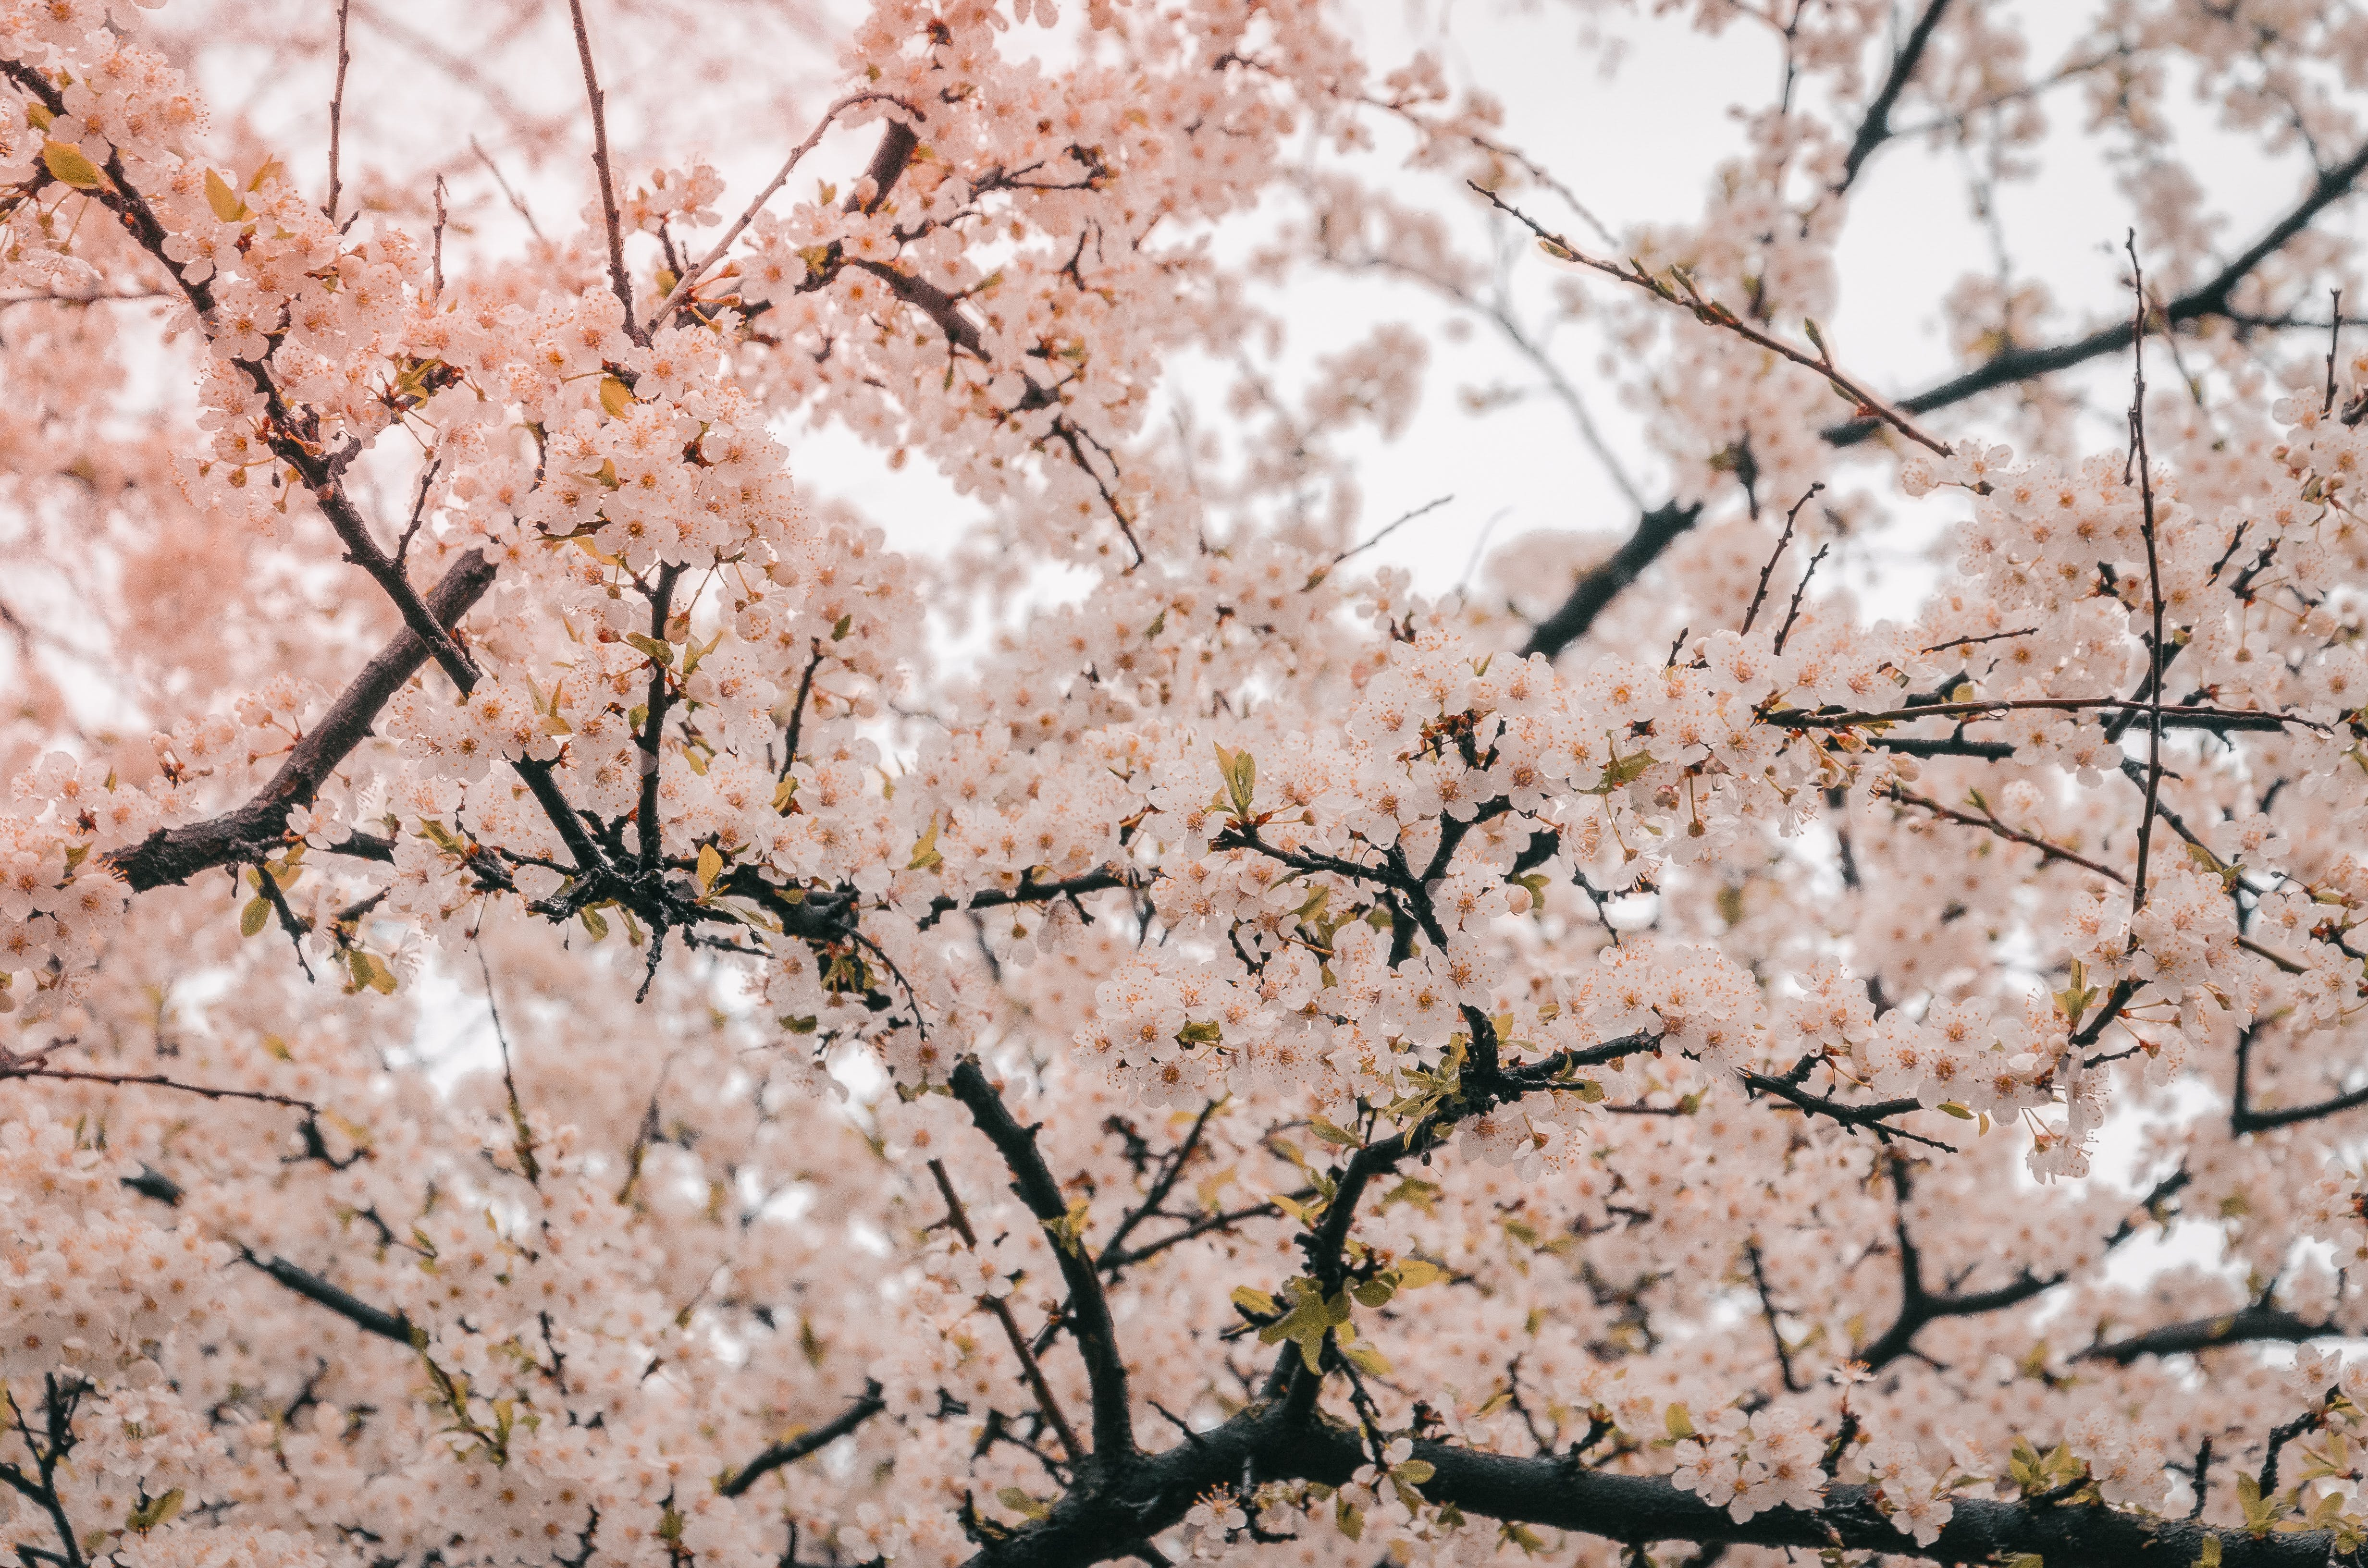 Photography of Cherry Blossom